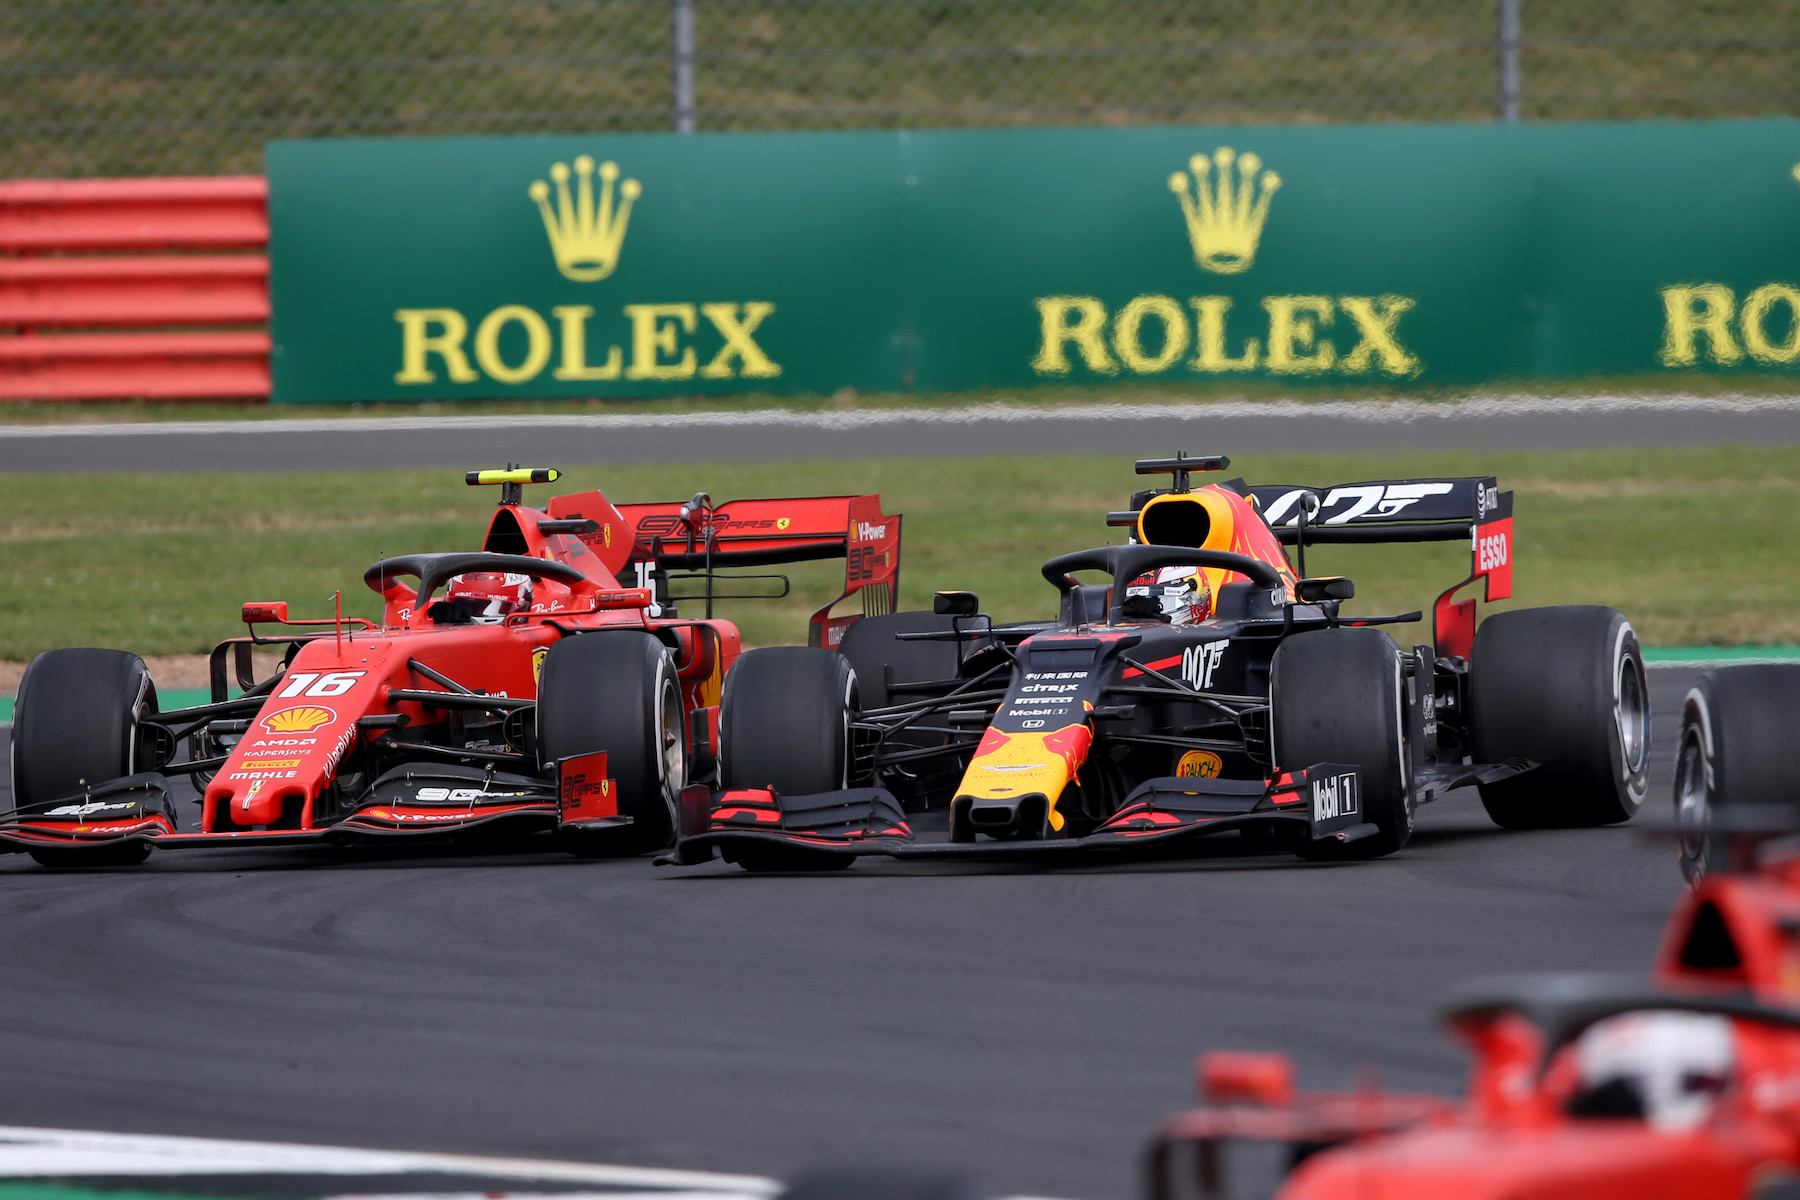 6 F 2019 British Grand Prix Sunday 27.jpg